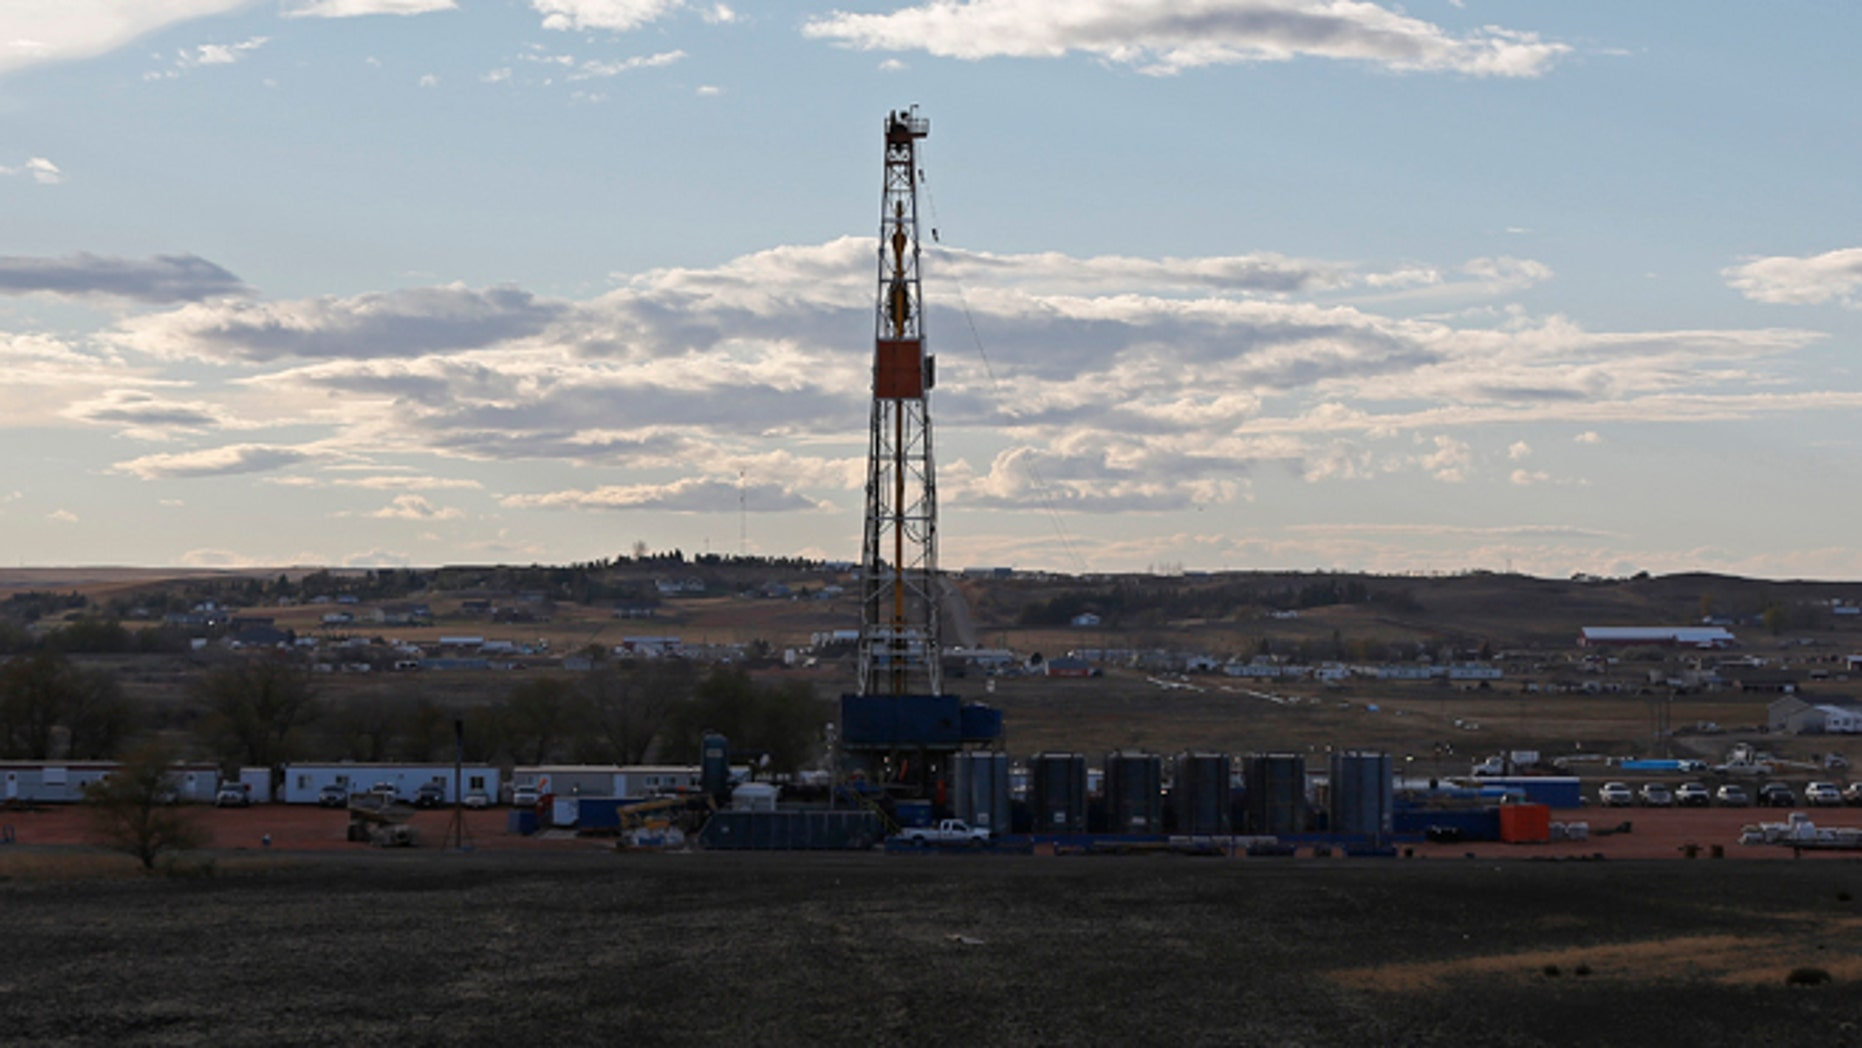 This undated photo shows an oil drilling rig outside Watford, North Dakota.